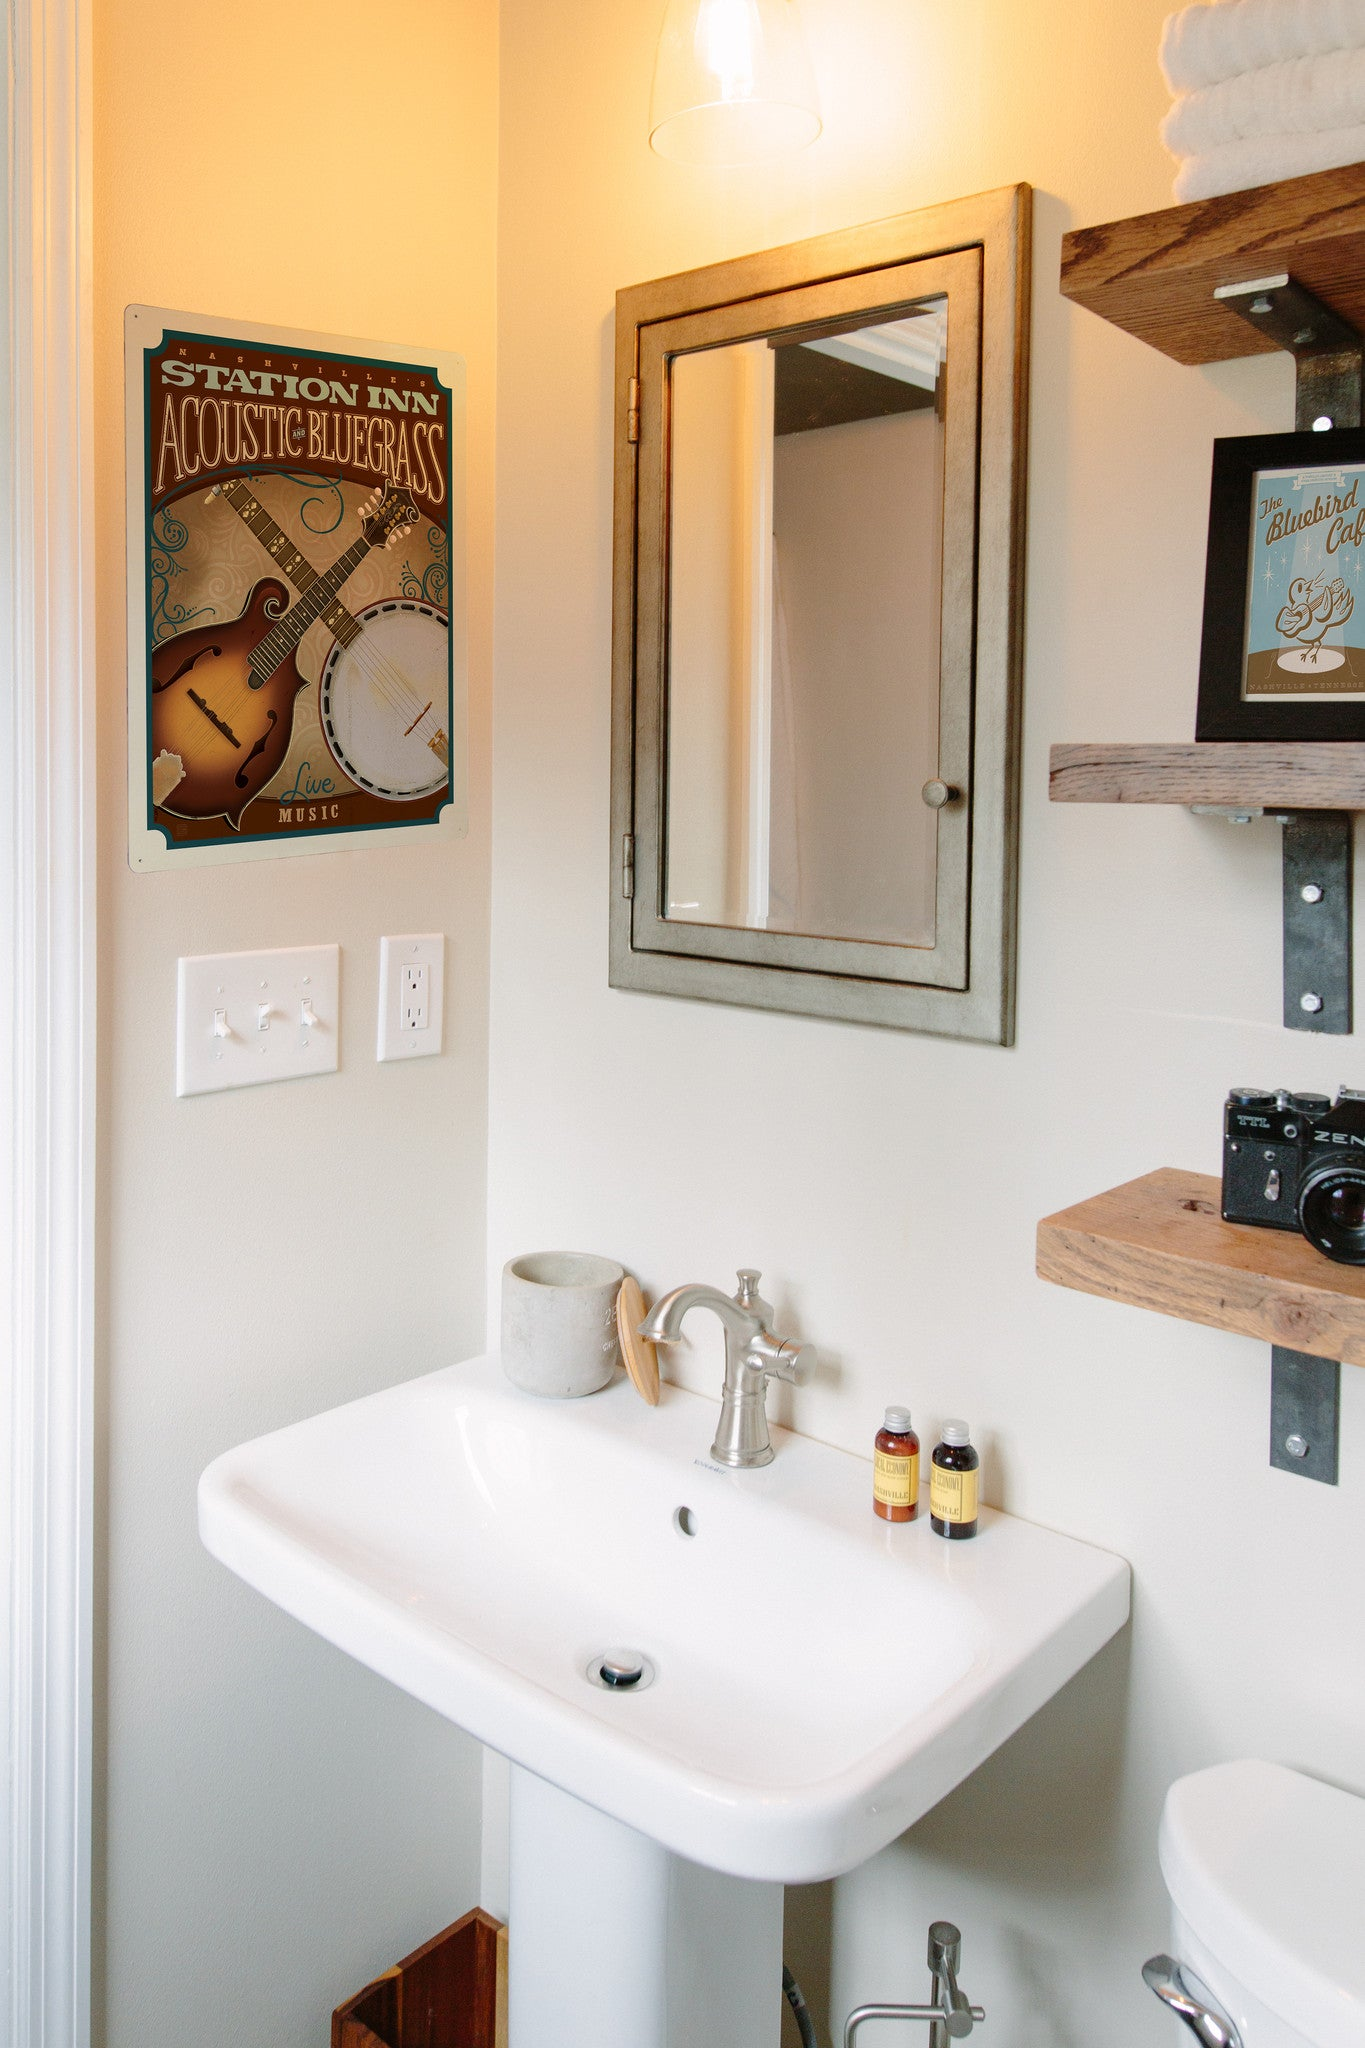 For Bathroom Spaces, Our Friends Alyssa And Ray At Brasstacksandco  Photographed A Newly Renovated Small Bathroom And A More Vintage Large  Bathroom Found In ...